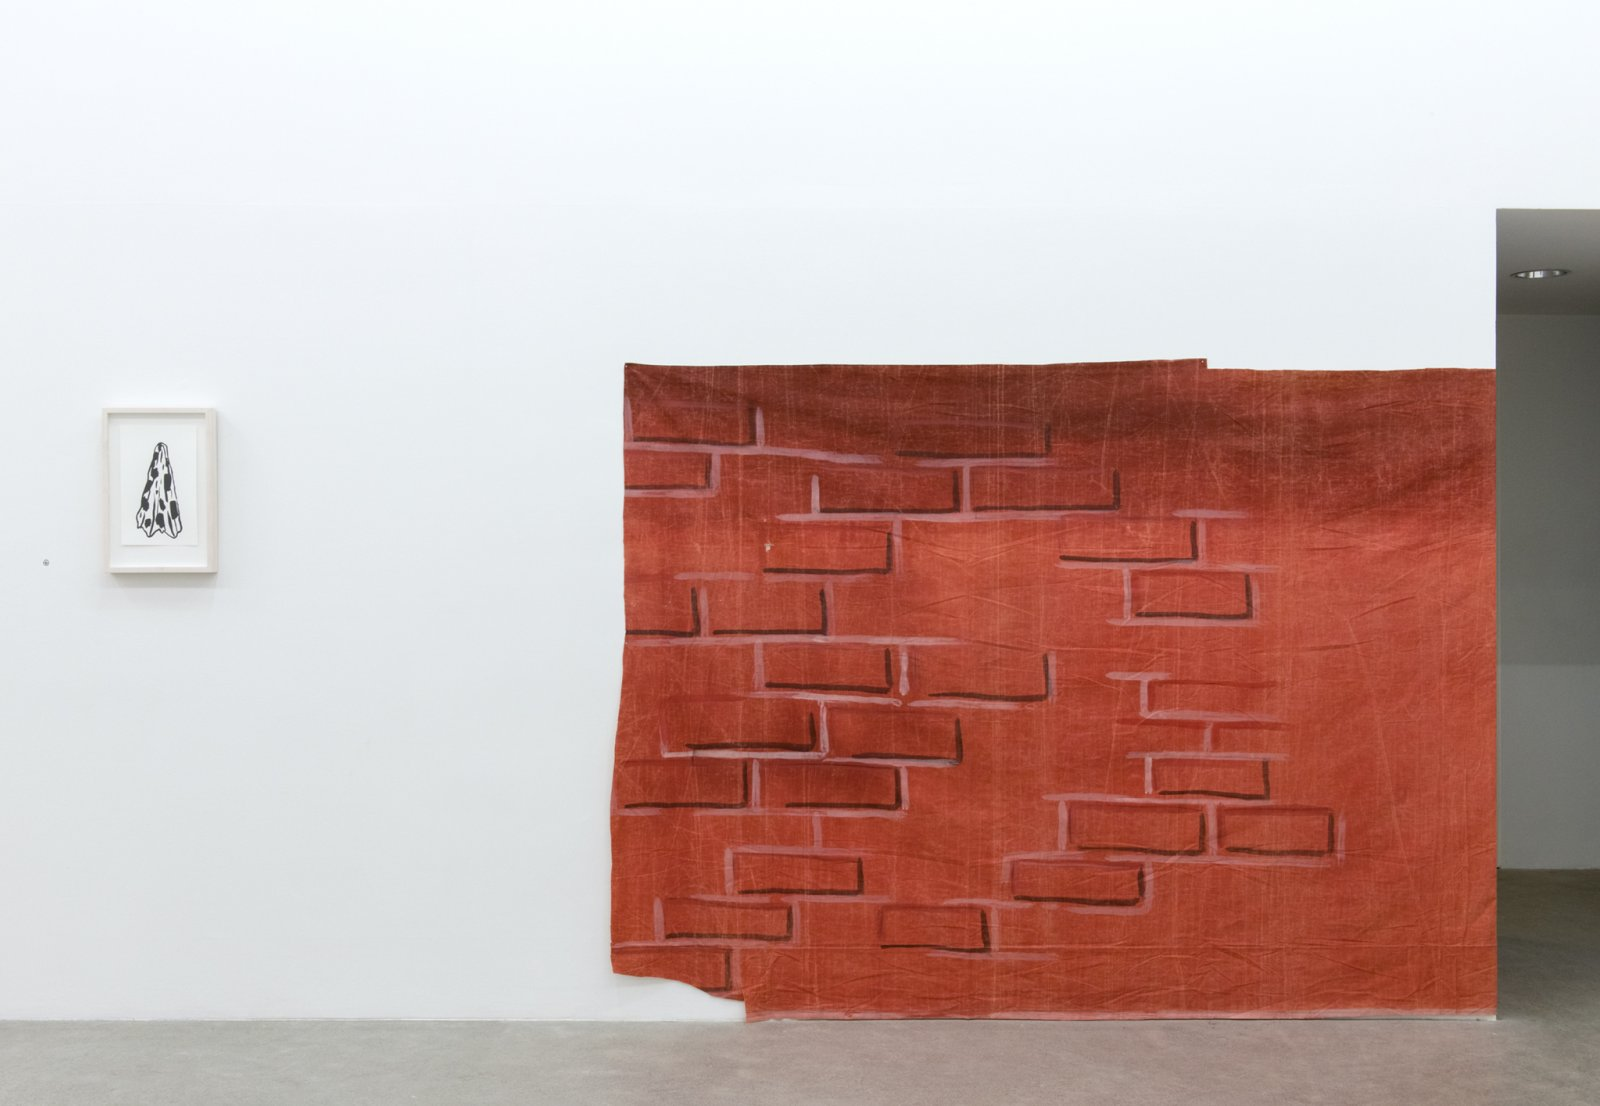 ​Geoffrey Farmer, LIPSTICK BRICK WITH MID VOWEL AFOUL DISH TOWEL, 2017, ink on paper, theatre backdrop (1939), backdrop: 71 x 200 in (180 x 508 cm), drawing: 18 x 12 in. (45 x 30 cm)​ by Geoffrey Farmer